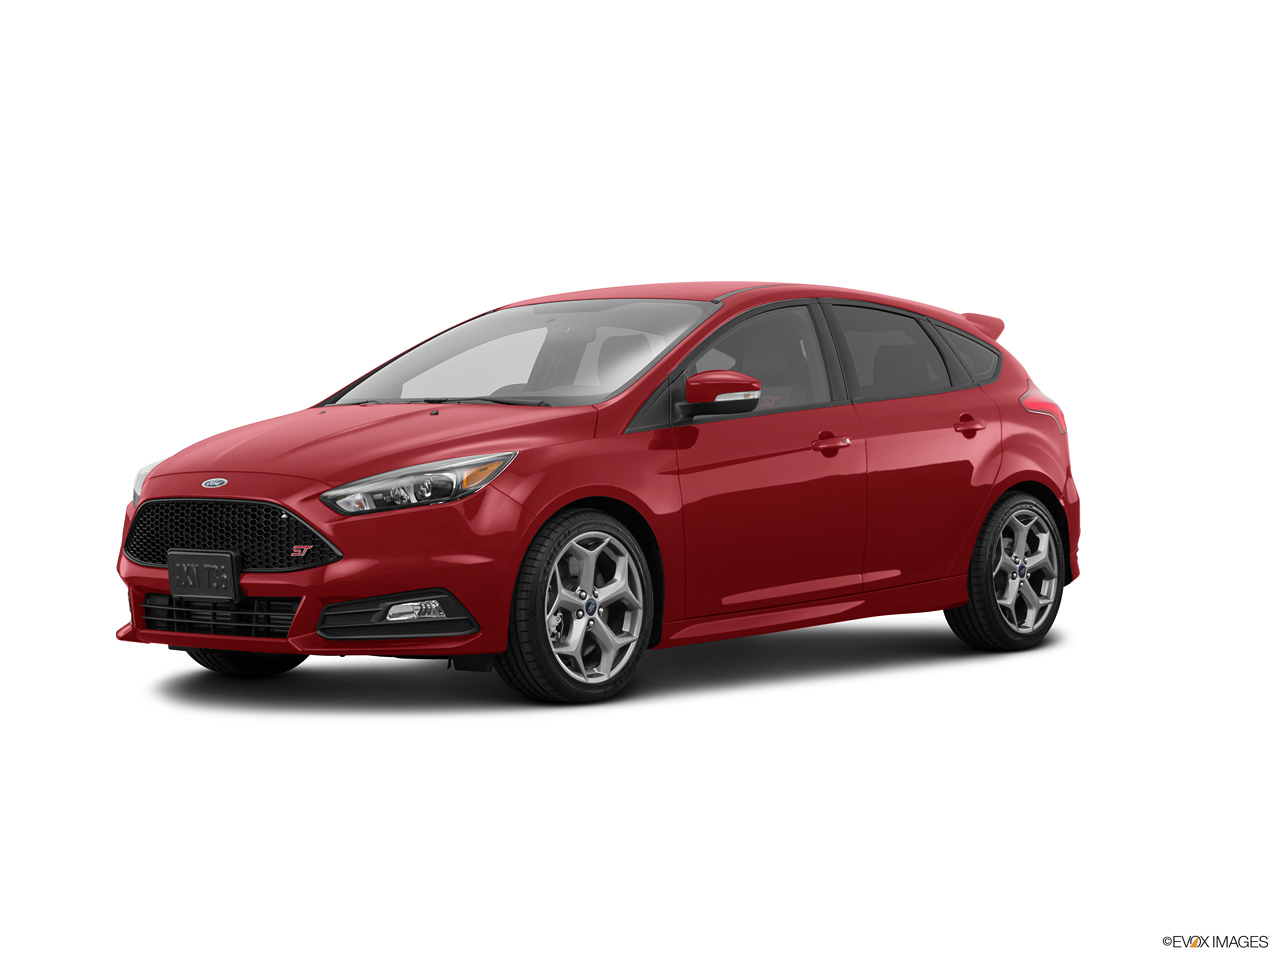 car features list for ford focus 2017 1 6l trend sedan. Black Bedroom Furniture Sets. Home Design Ideas